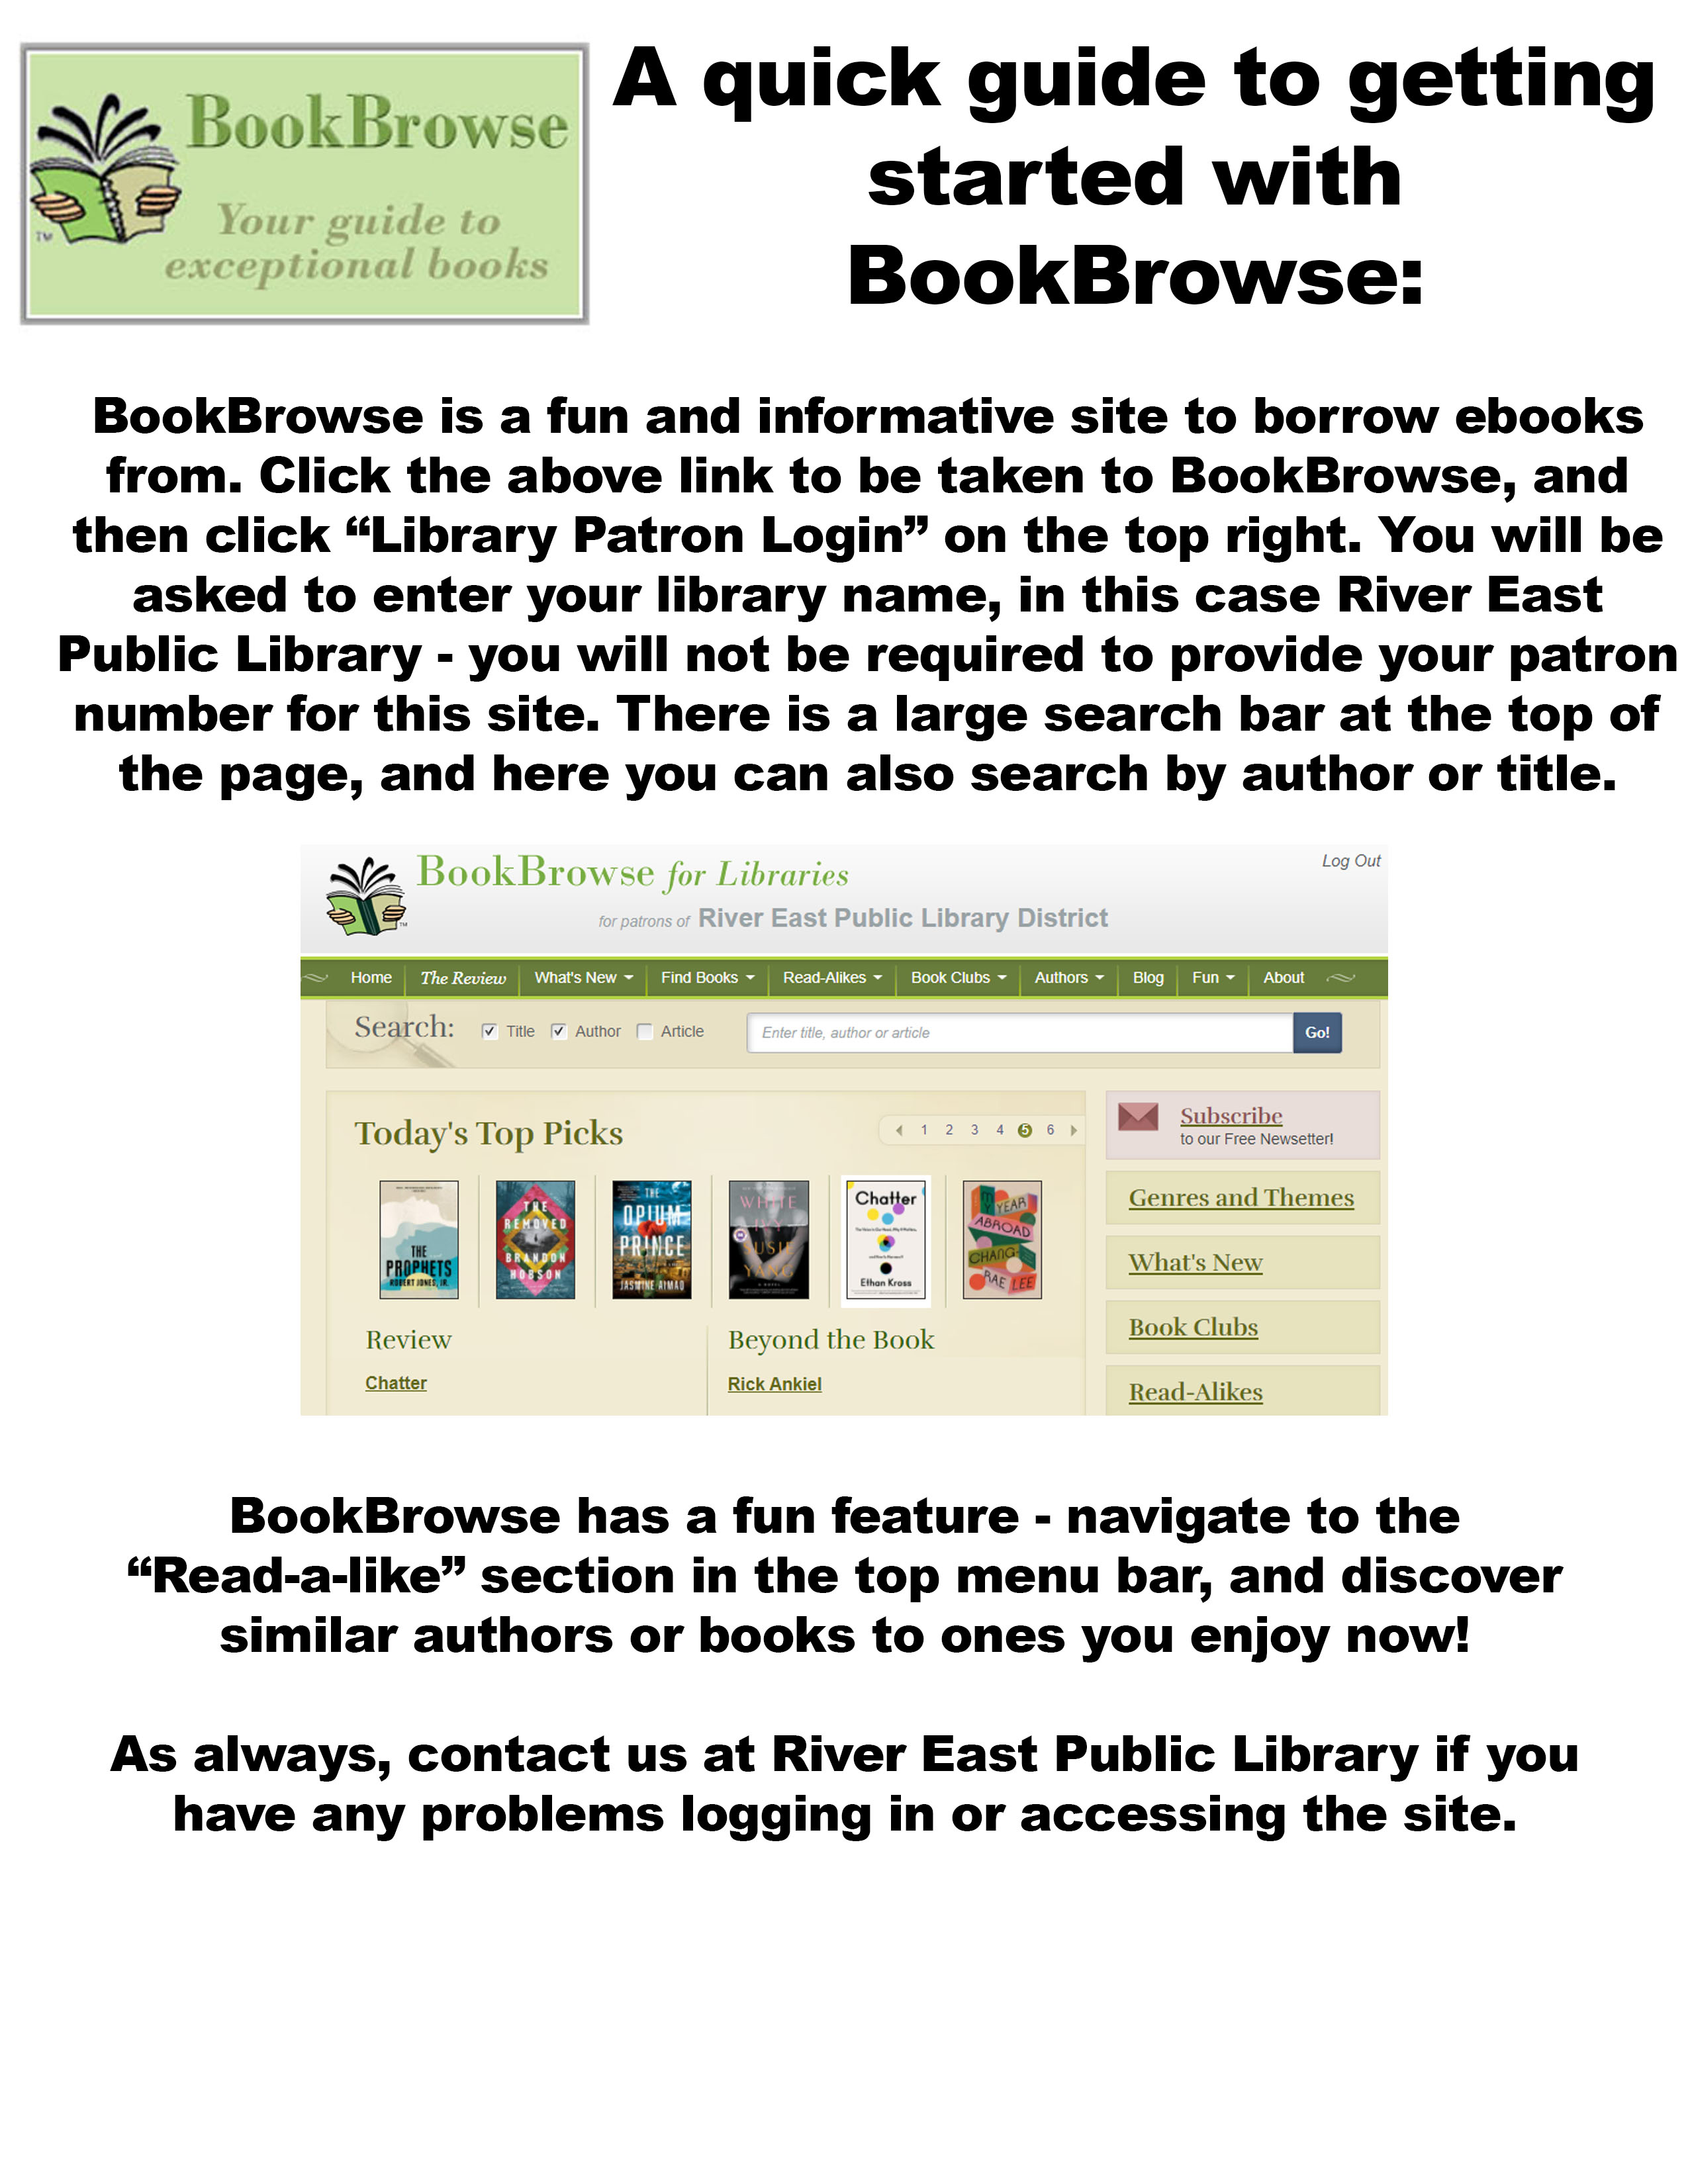 Poster describing how to access and utilize the BookBrowse website